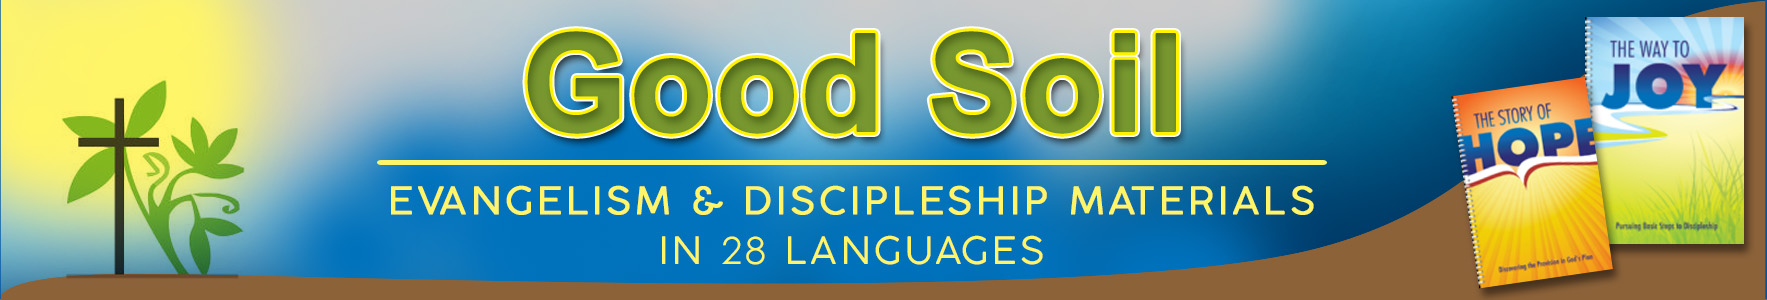 Good Soil Evangelism